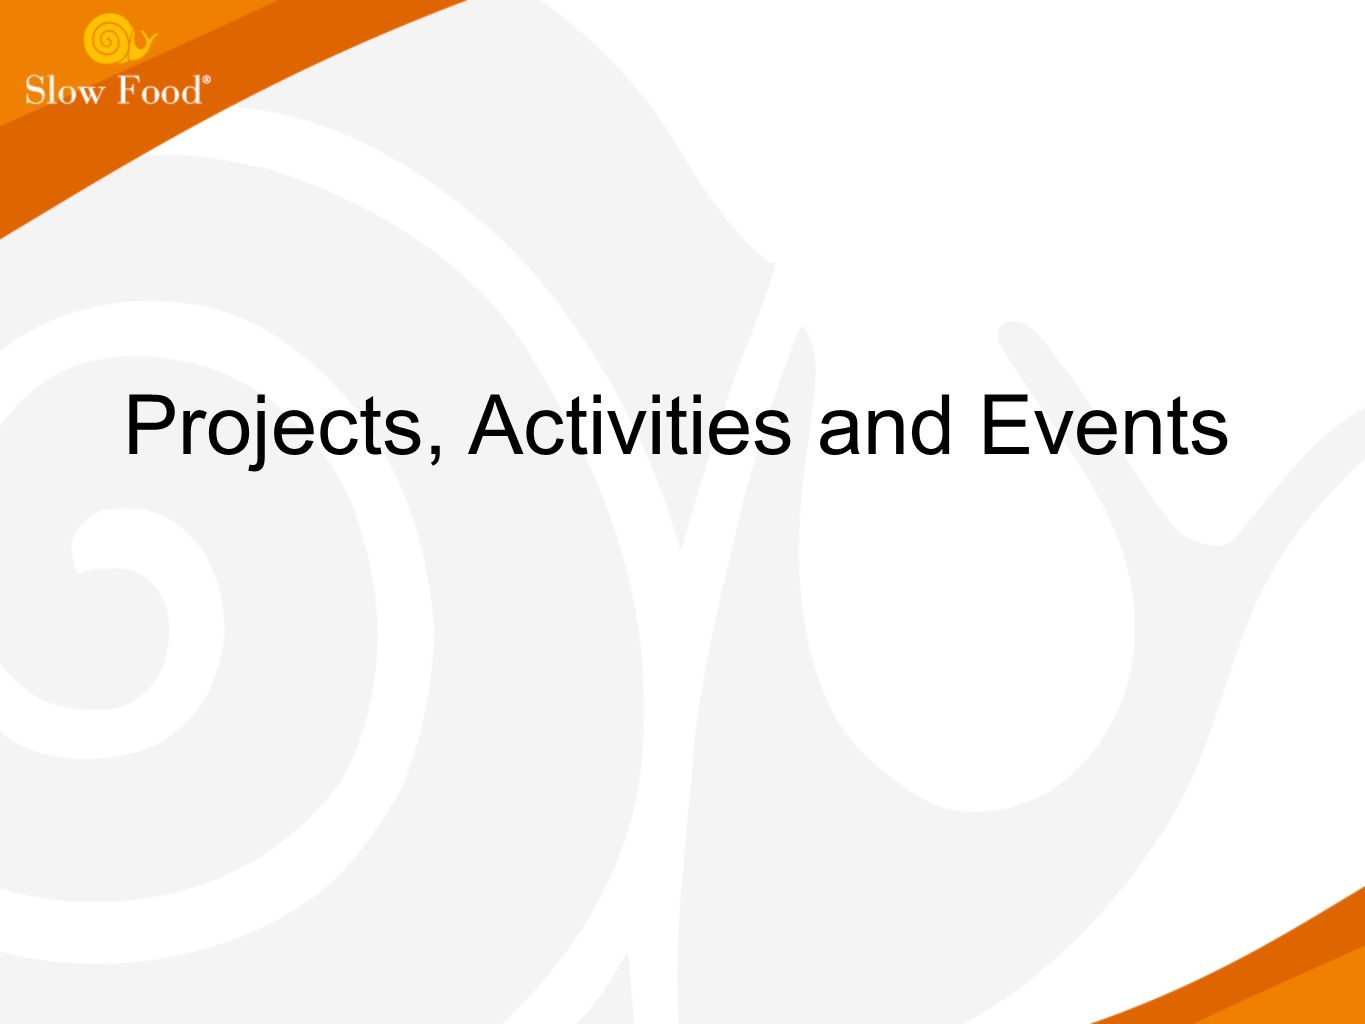 Projects, Activities and Events